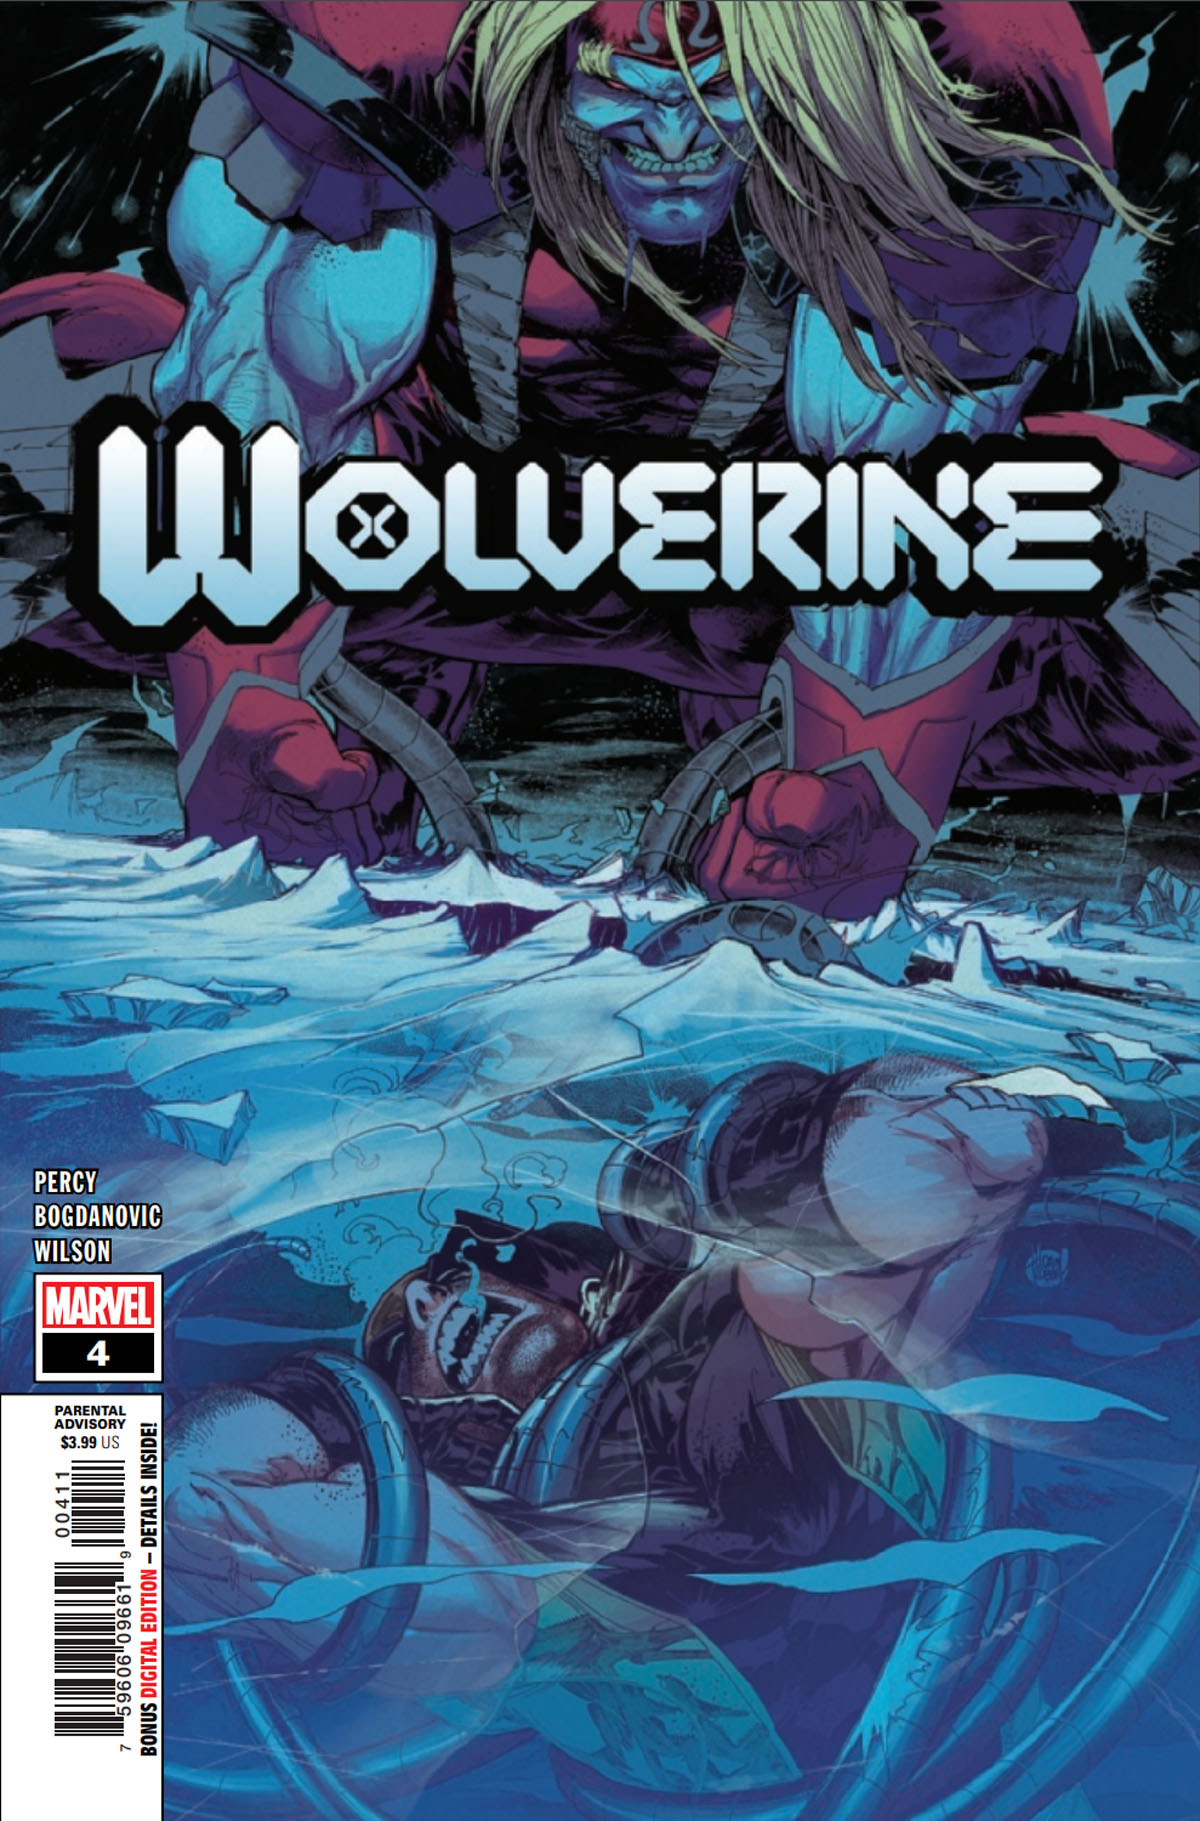 Wolverine #4 cover